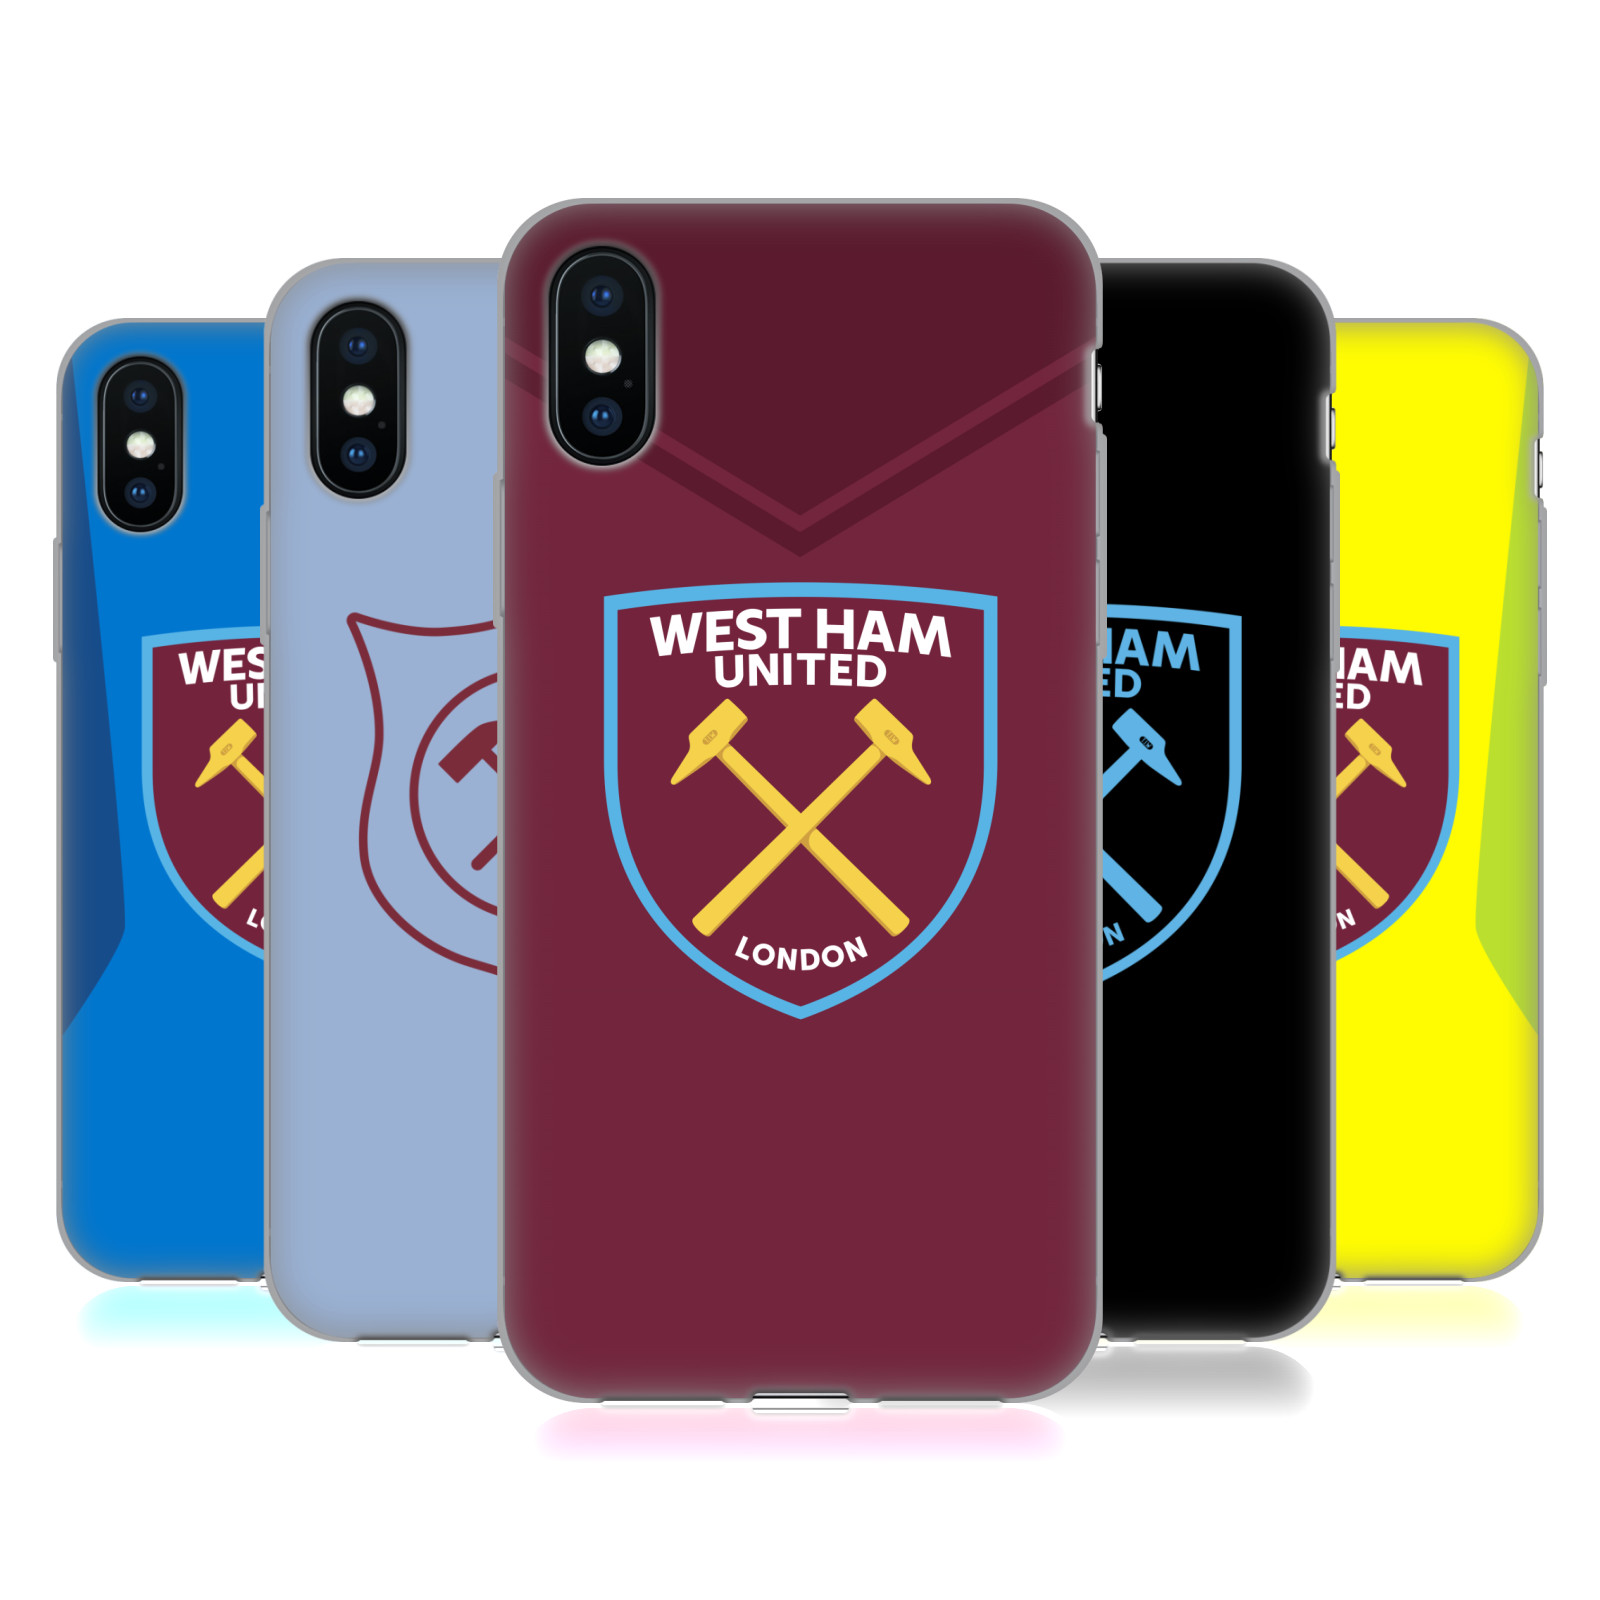 West Ham United FC 2017/18 Crest Kit